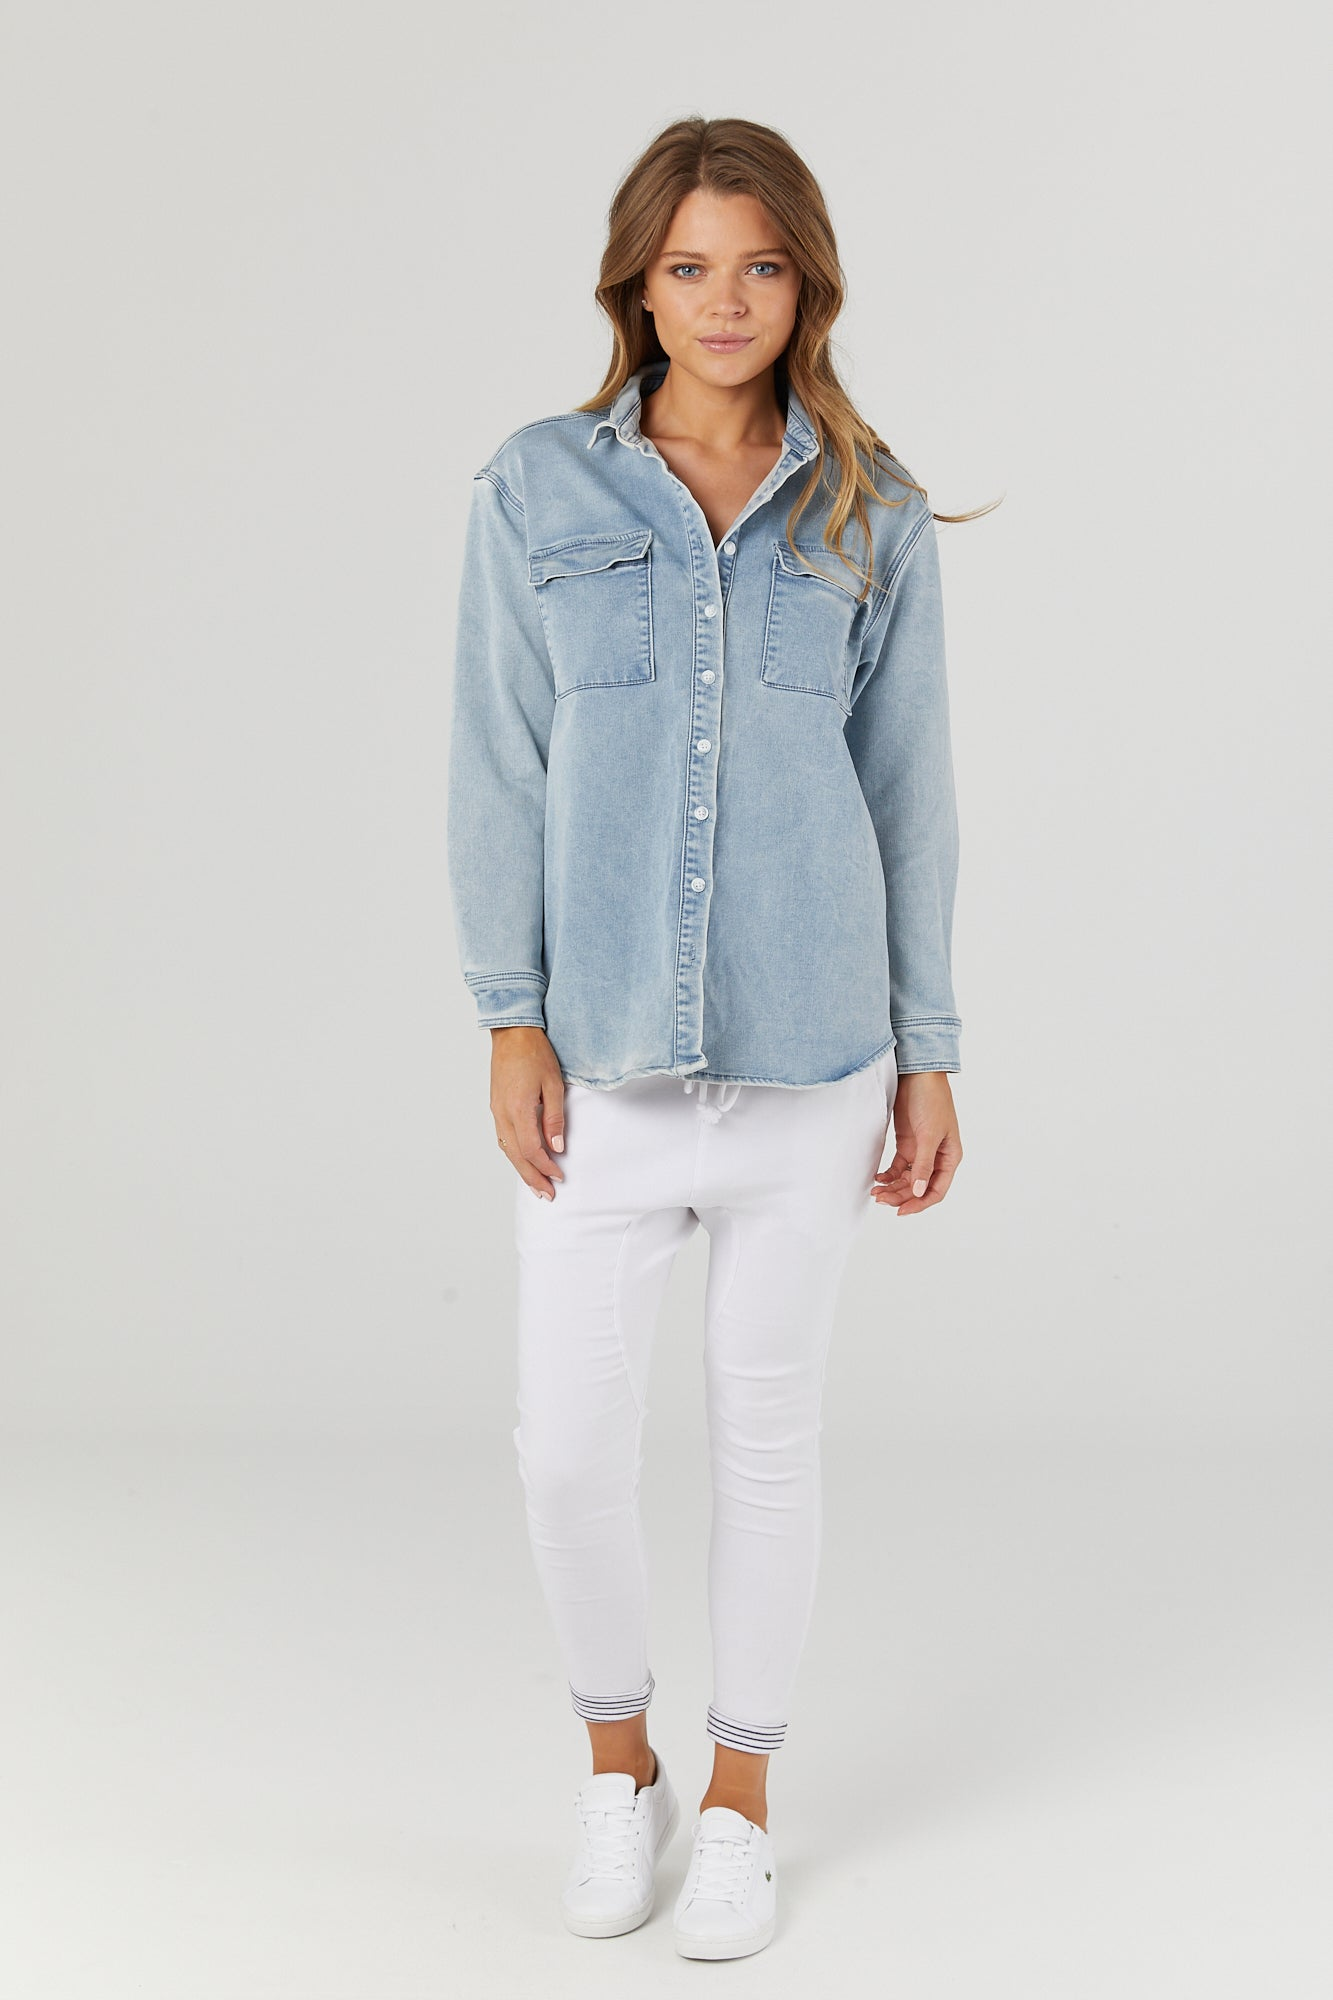 Boyfriend Denim Shirt/Jacket - LEGOE.